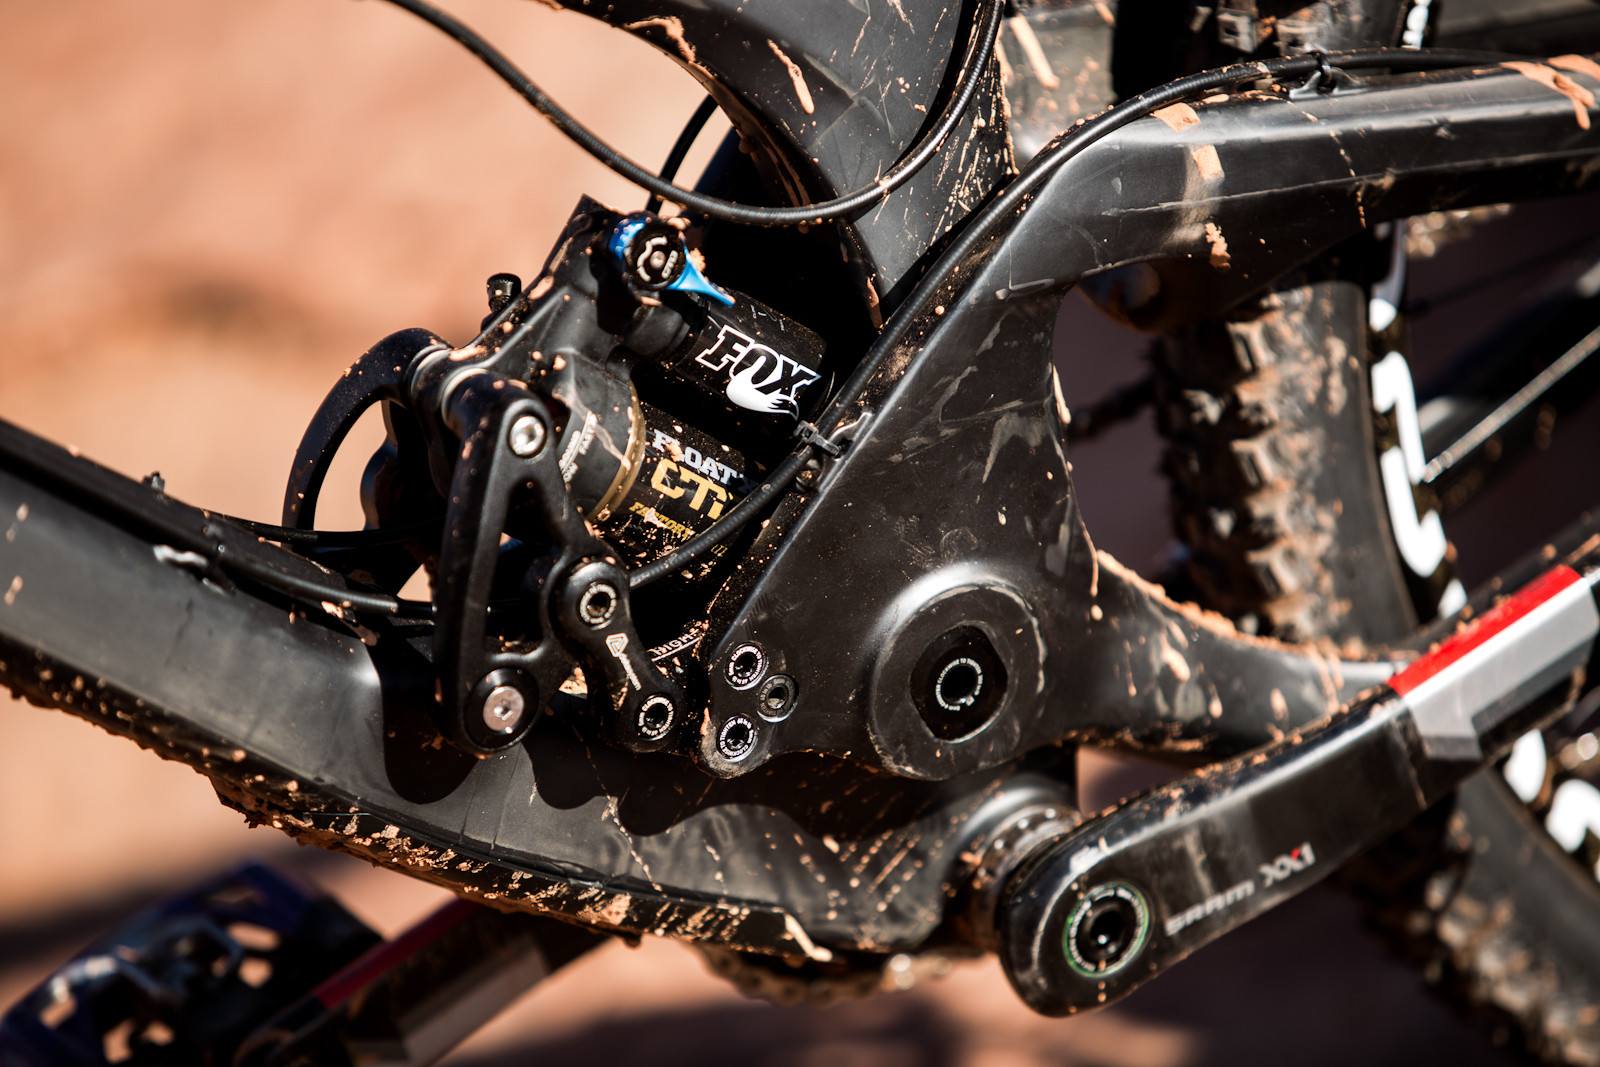 2014 Evil Uprising - 2014 Test Sessions: Evil Uprising - Mountain Biking Pictures - Vital MTB